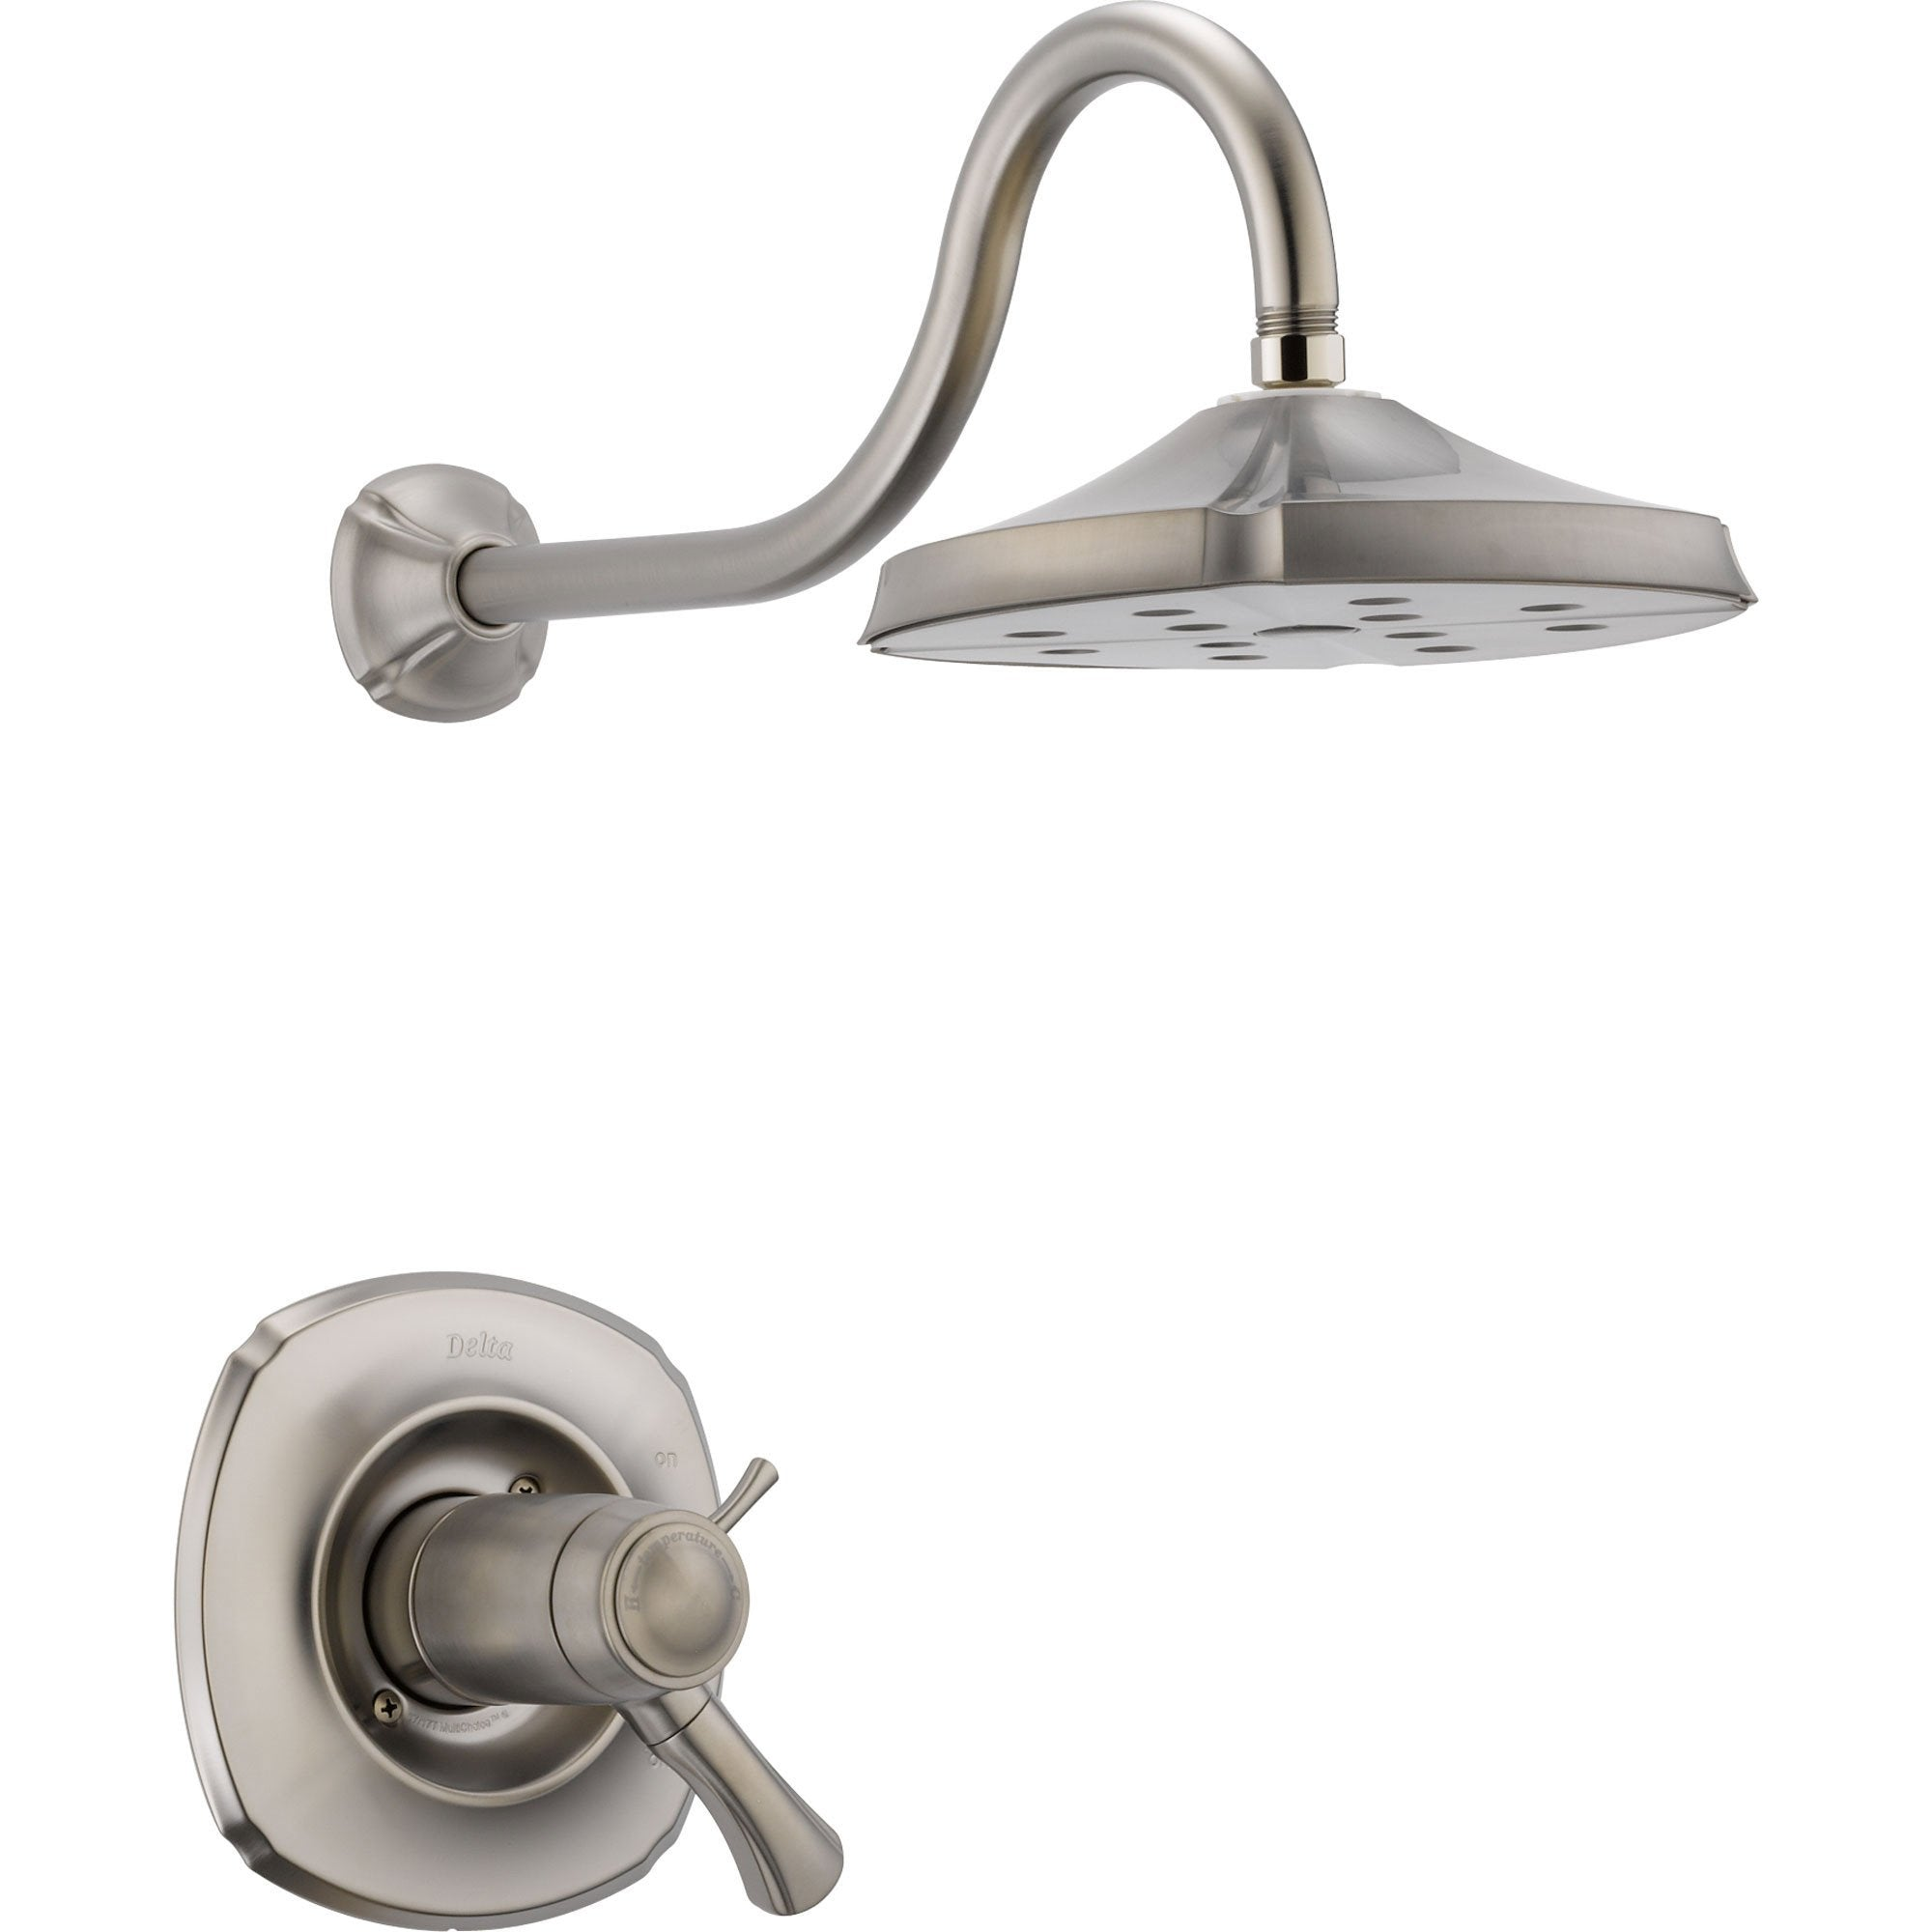 Delta Addison Stainless Steel Finish Thermostatic Shower Faucet with ...